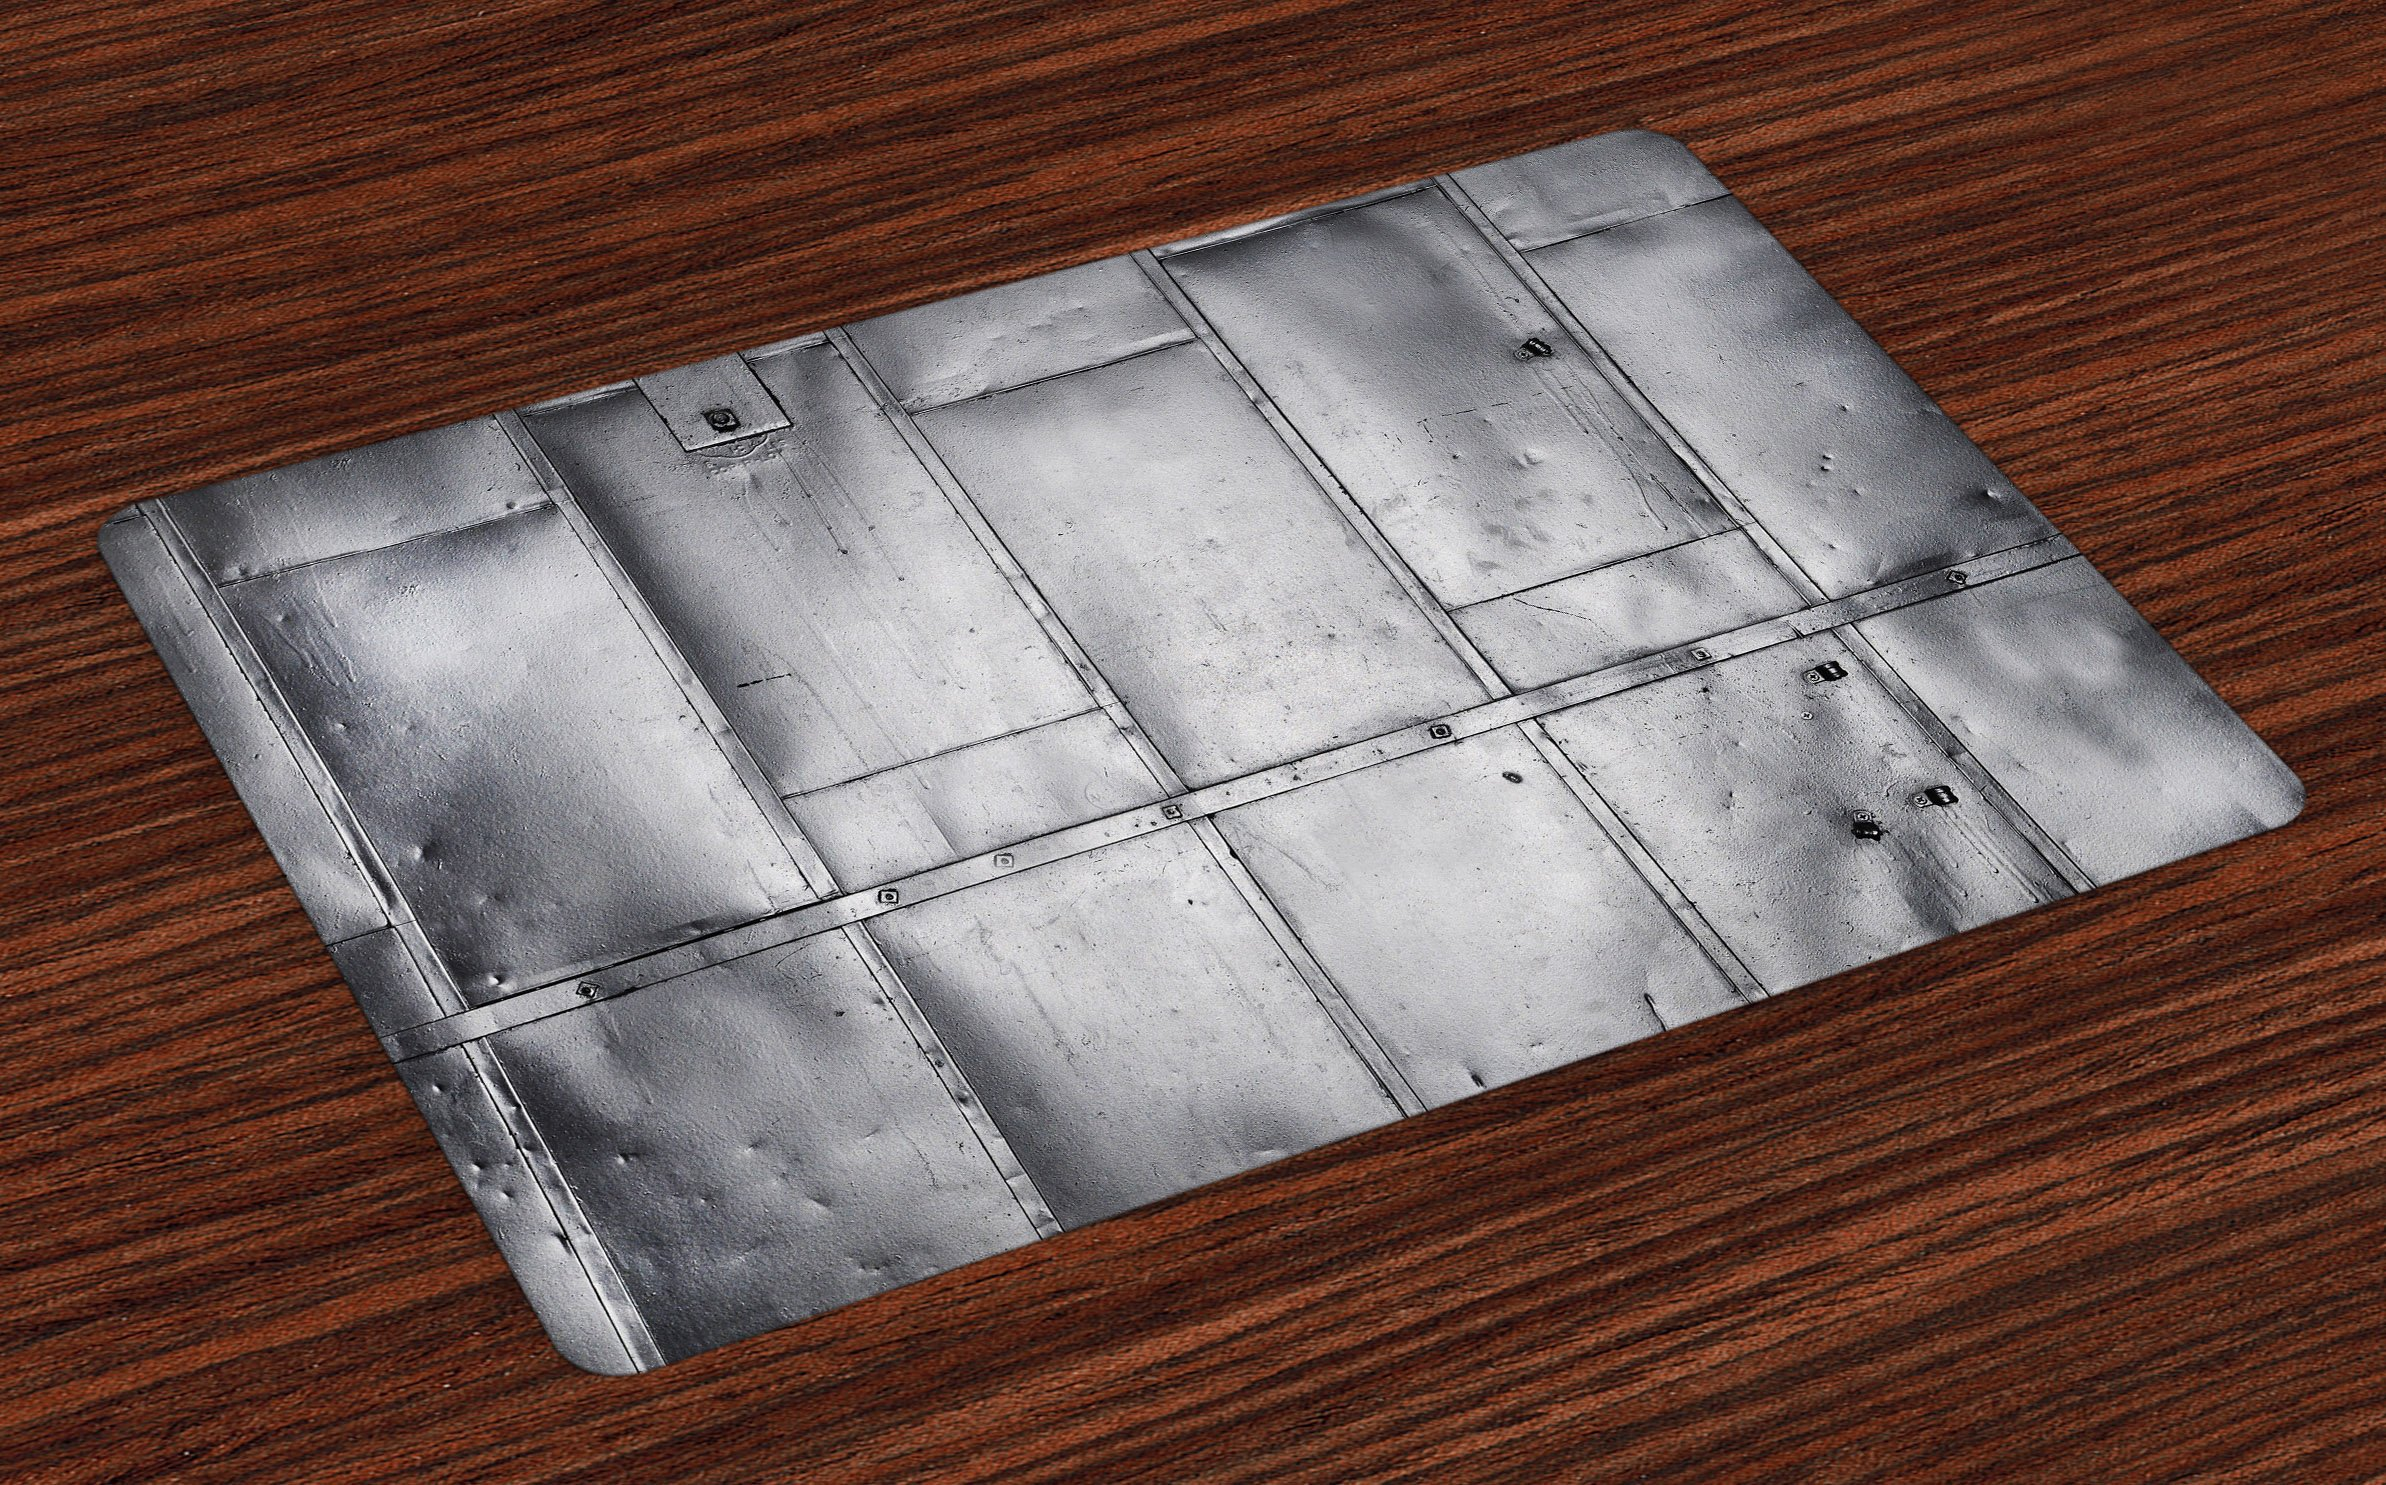 Ambesonne Industrial Place Mats Set of 4, Steel Panels Industrial Wall Theme Aluminum Background Futuristic Engineering Print, Washable Fabric Placemats for Dining Room Kitchen Table Decor, Silver